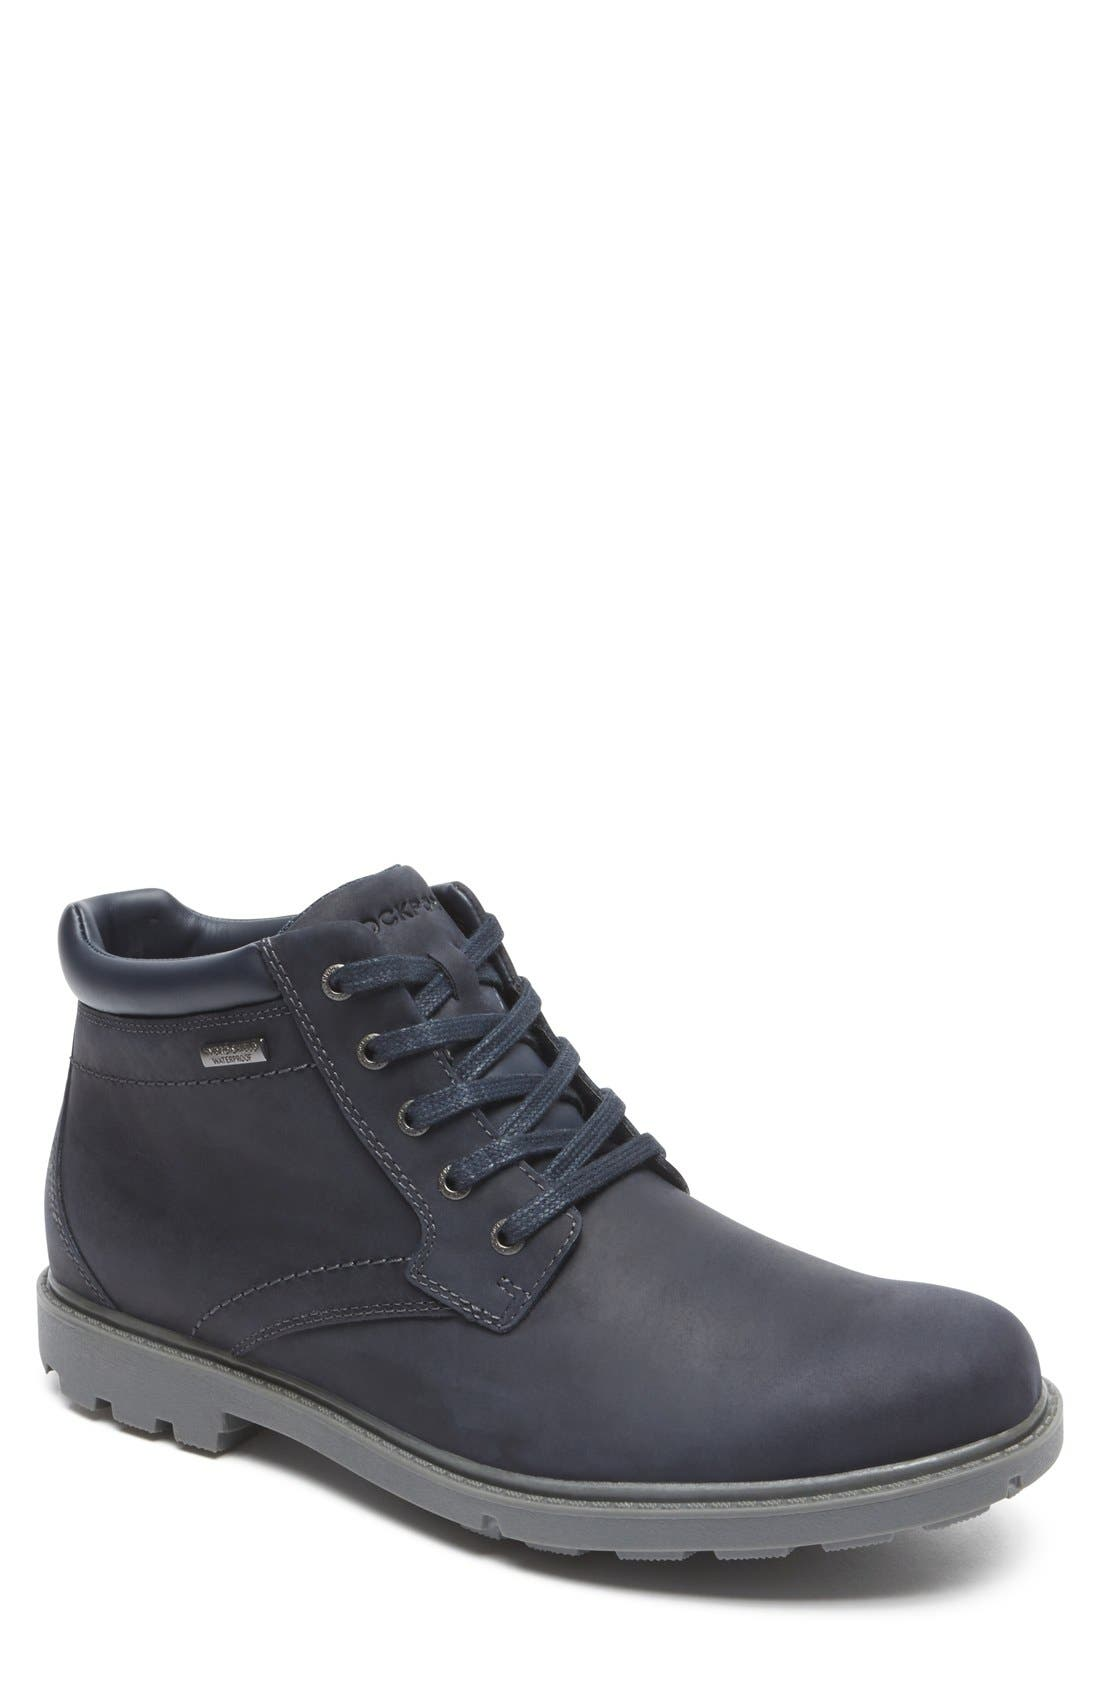 ROCKPORT 'Rugged Bucks Mid' Waterproof Boot